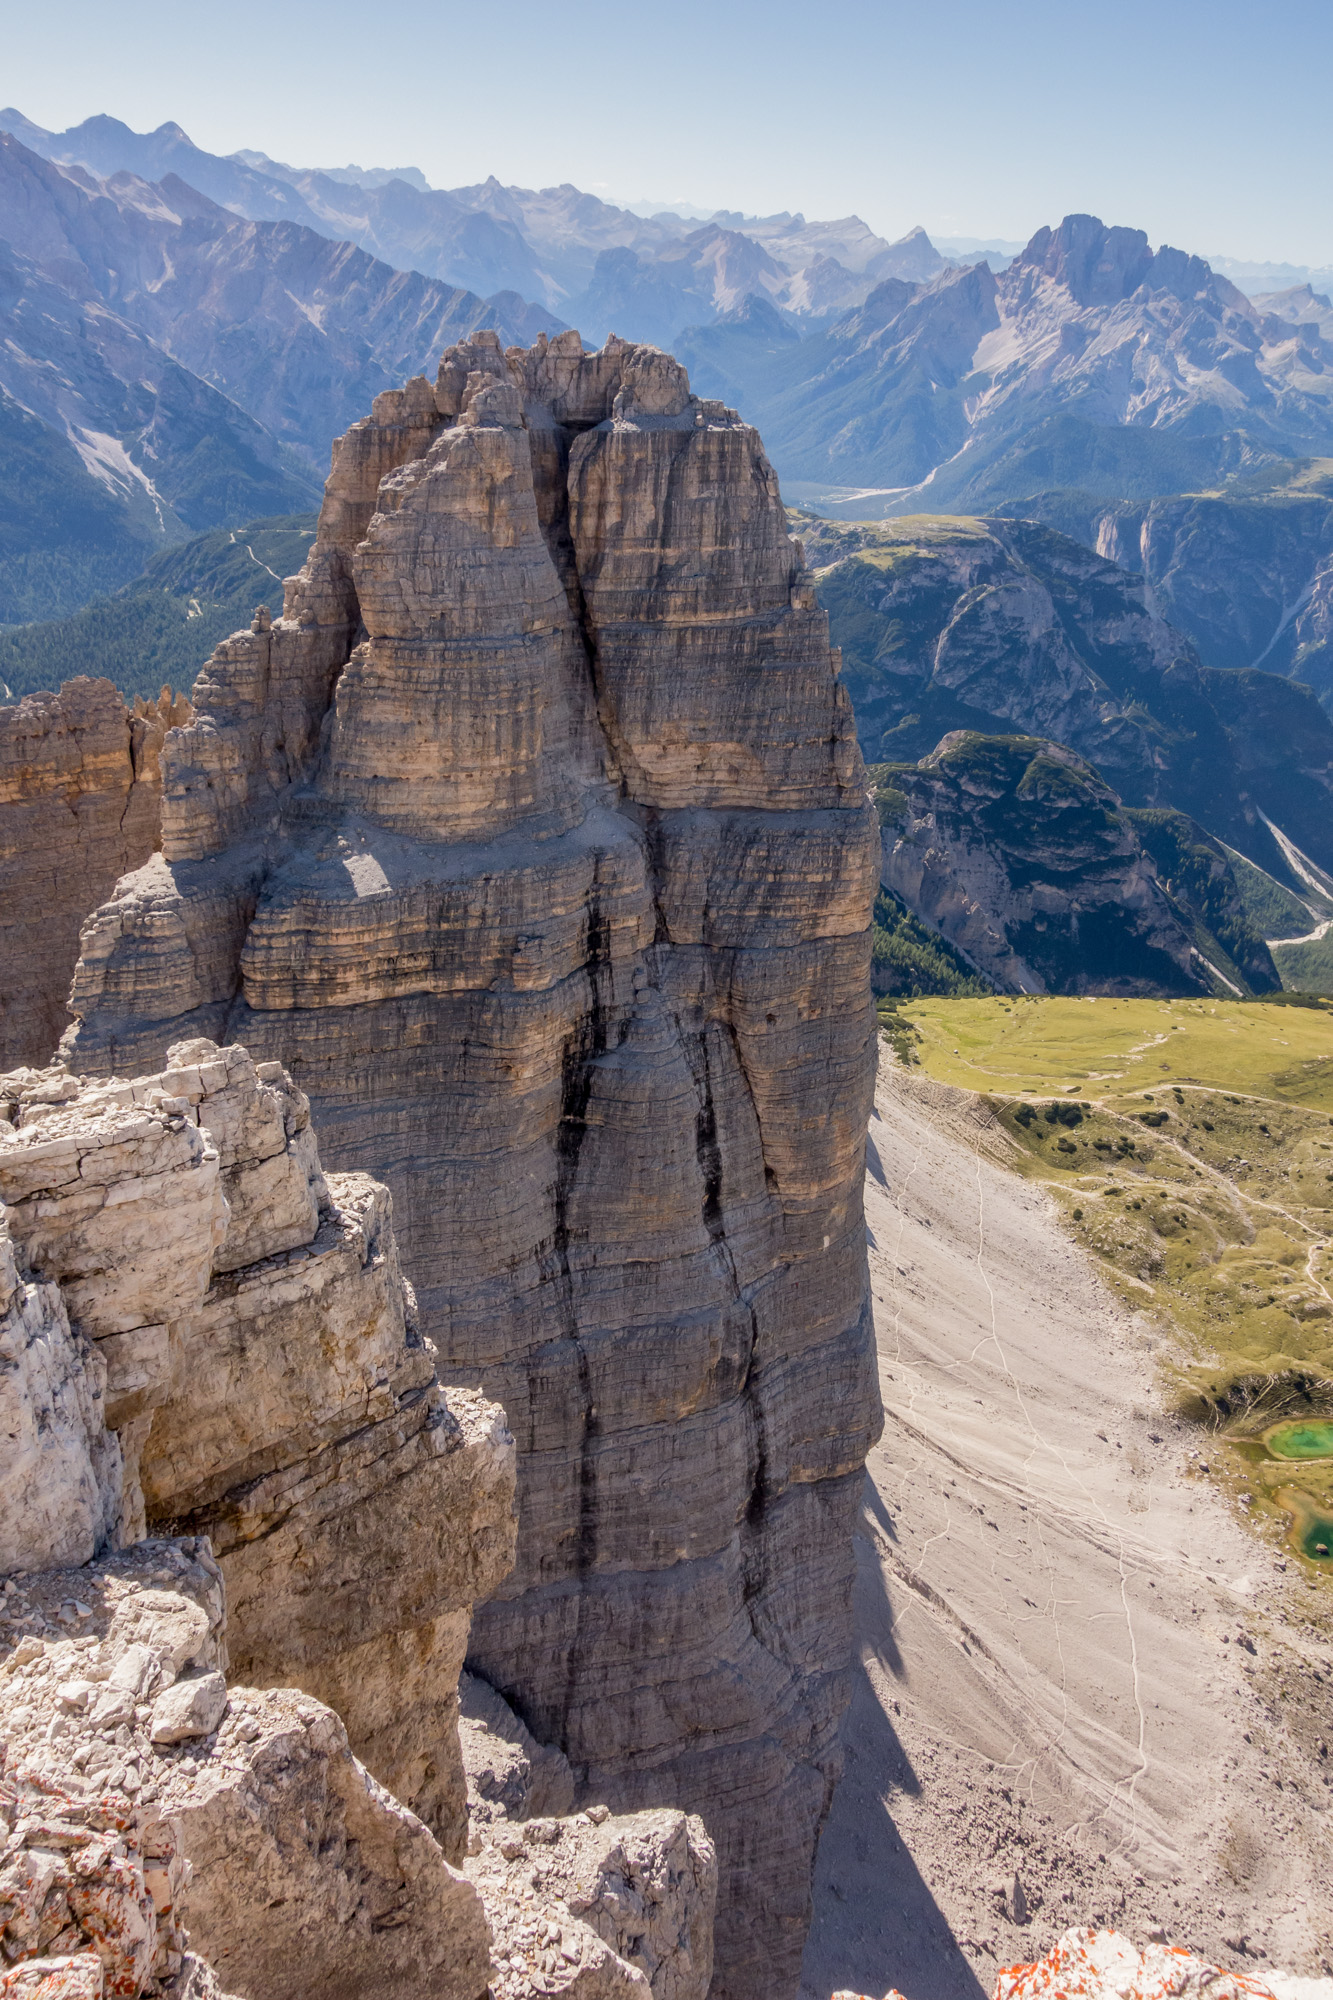 Looking west from the summit of Cima Grande on to the east face of the mighty Cima Ovest